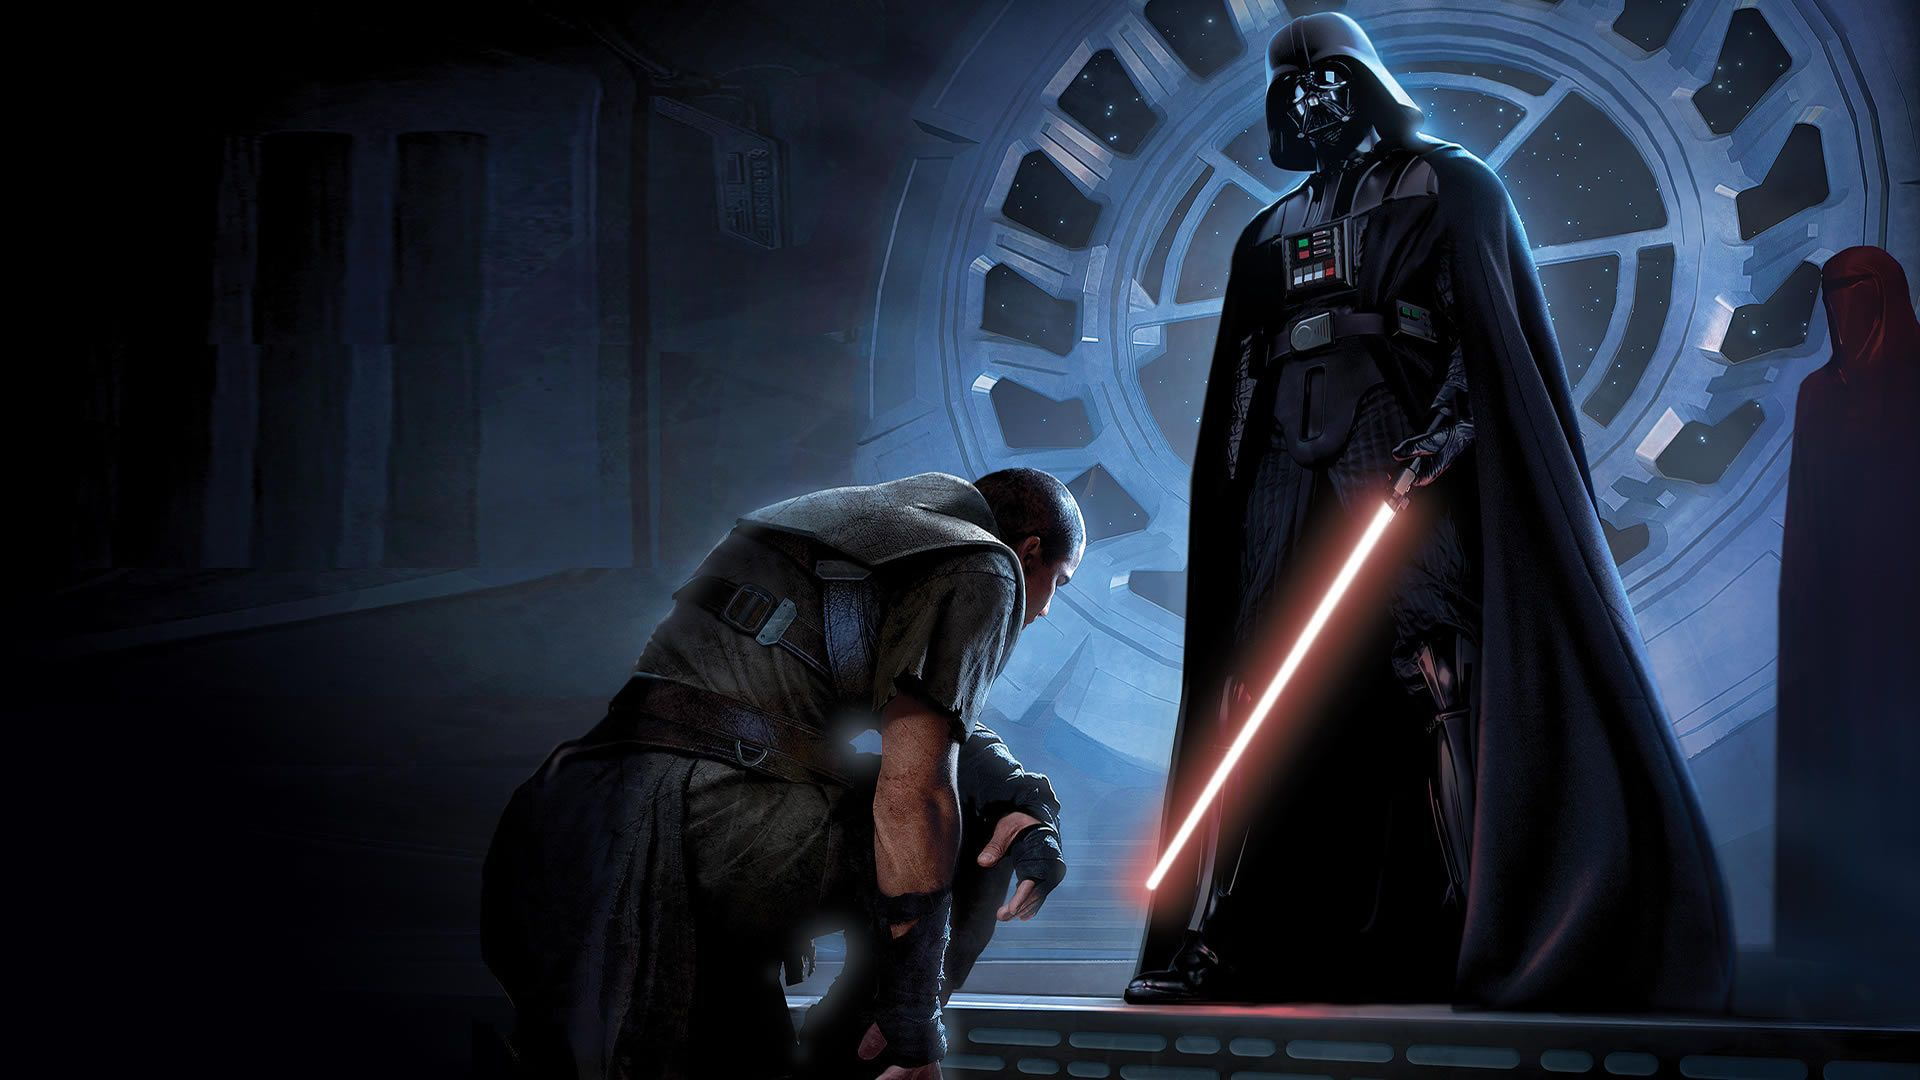 5 Star Wars Darth Vader Hd Wallpapers Backgrounds